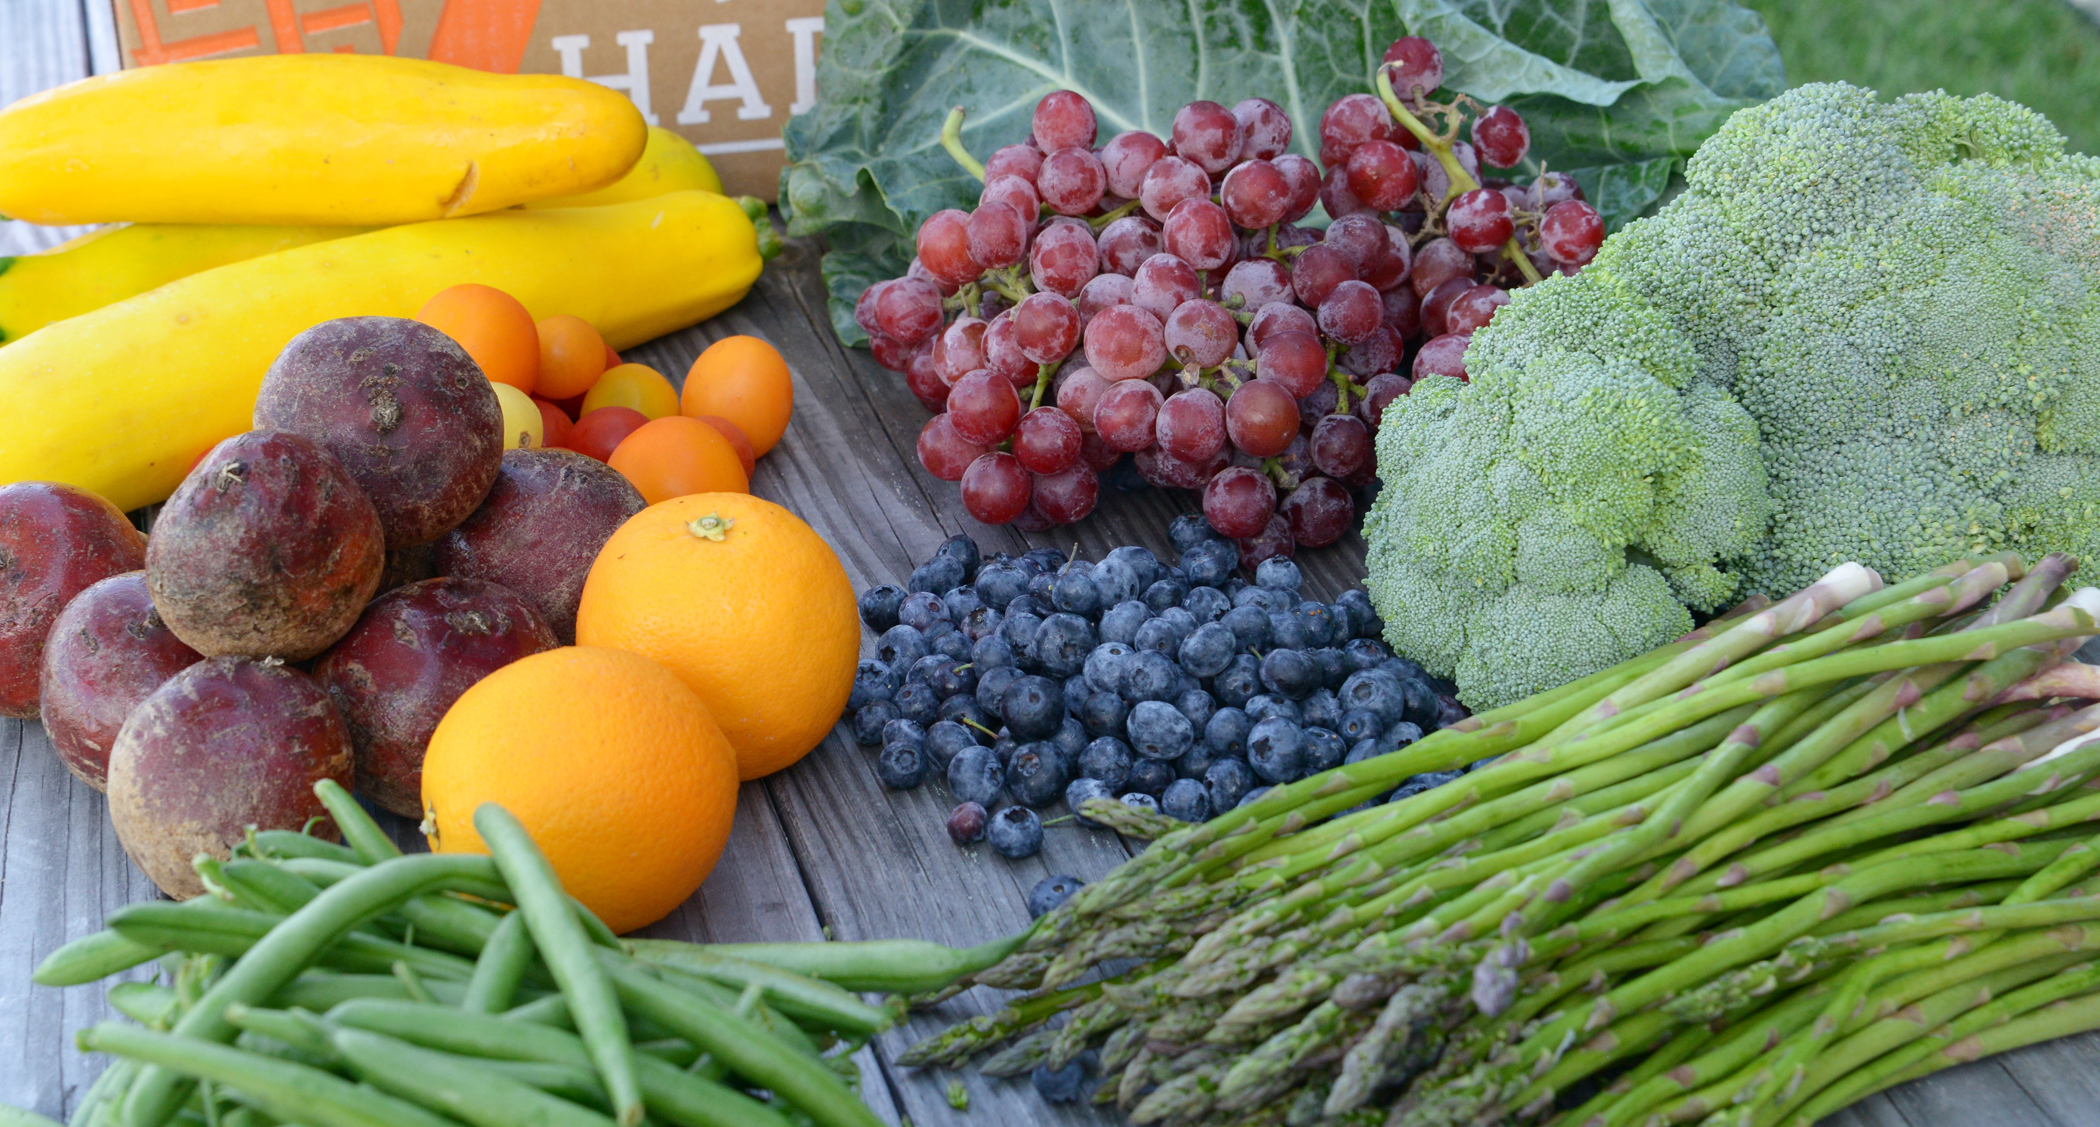 Welcome Blue365 Members! - HUNGRY HARVEST offers convenient, healthy, farm fresh produce that is good for you, good for your wallet and good for the planet… and it's only a click away! Get $20 off when you sign up with promo code HARVEST365